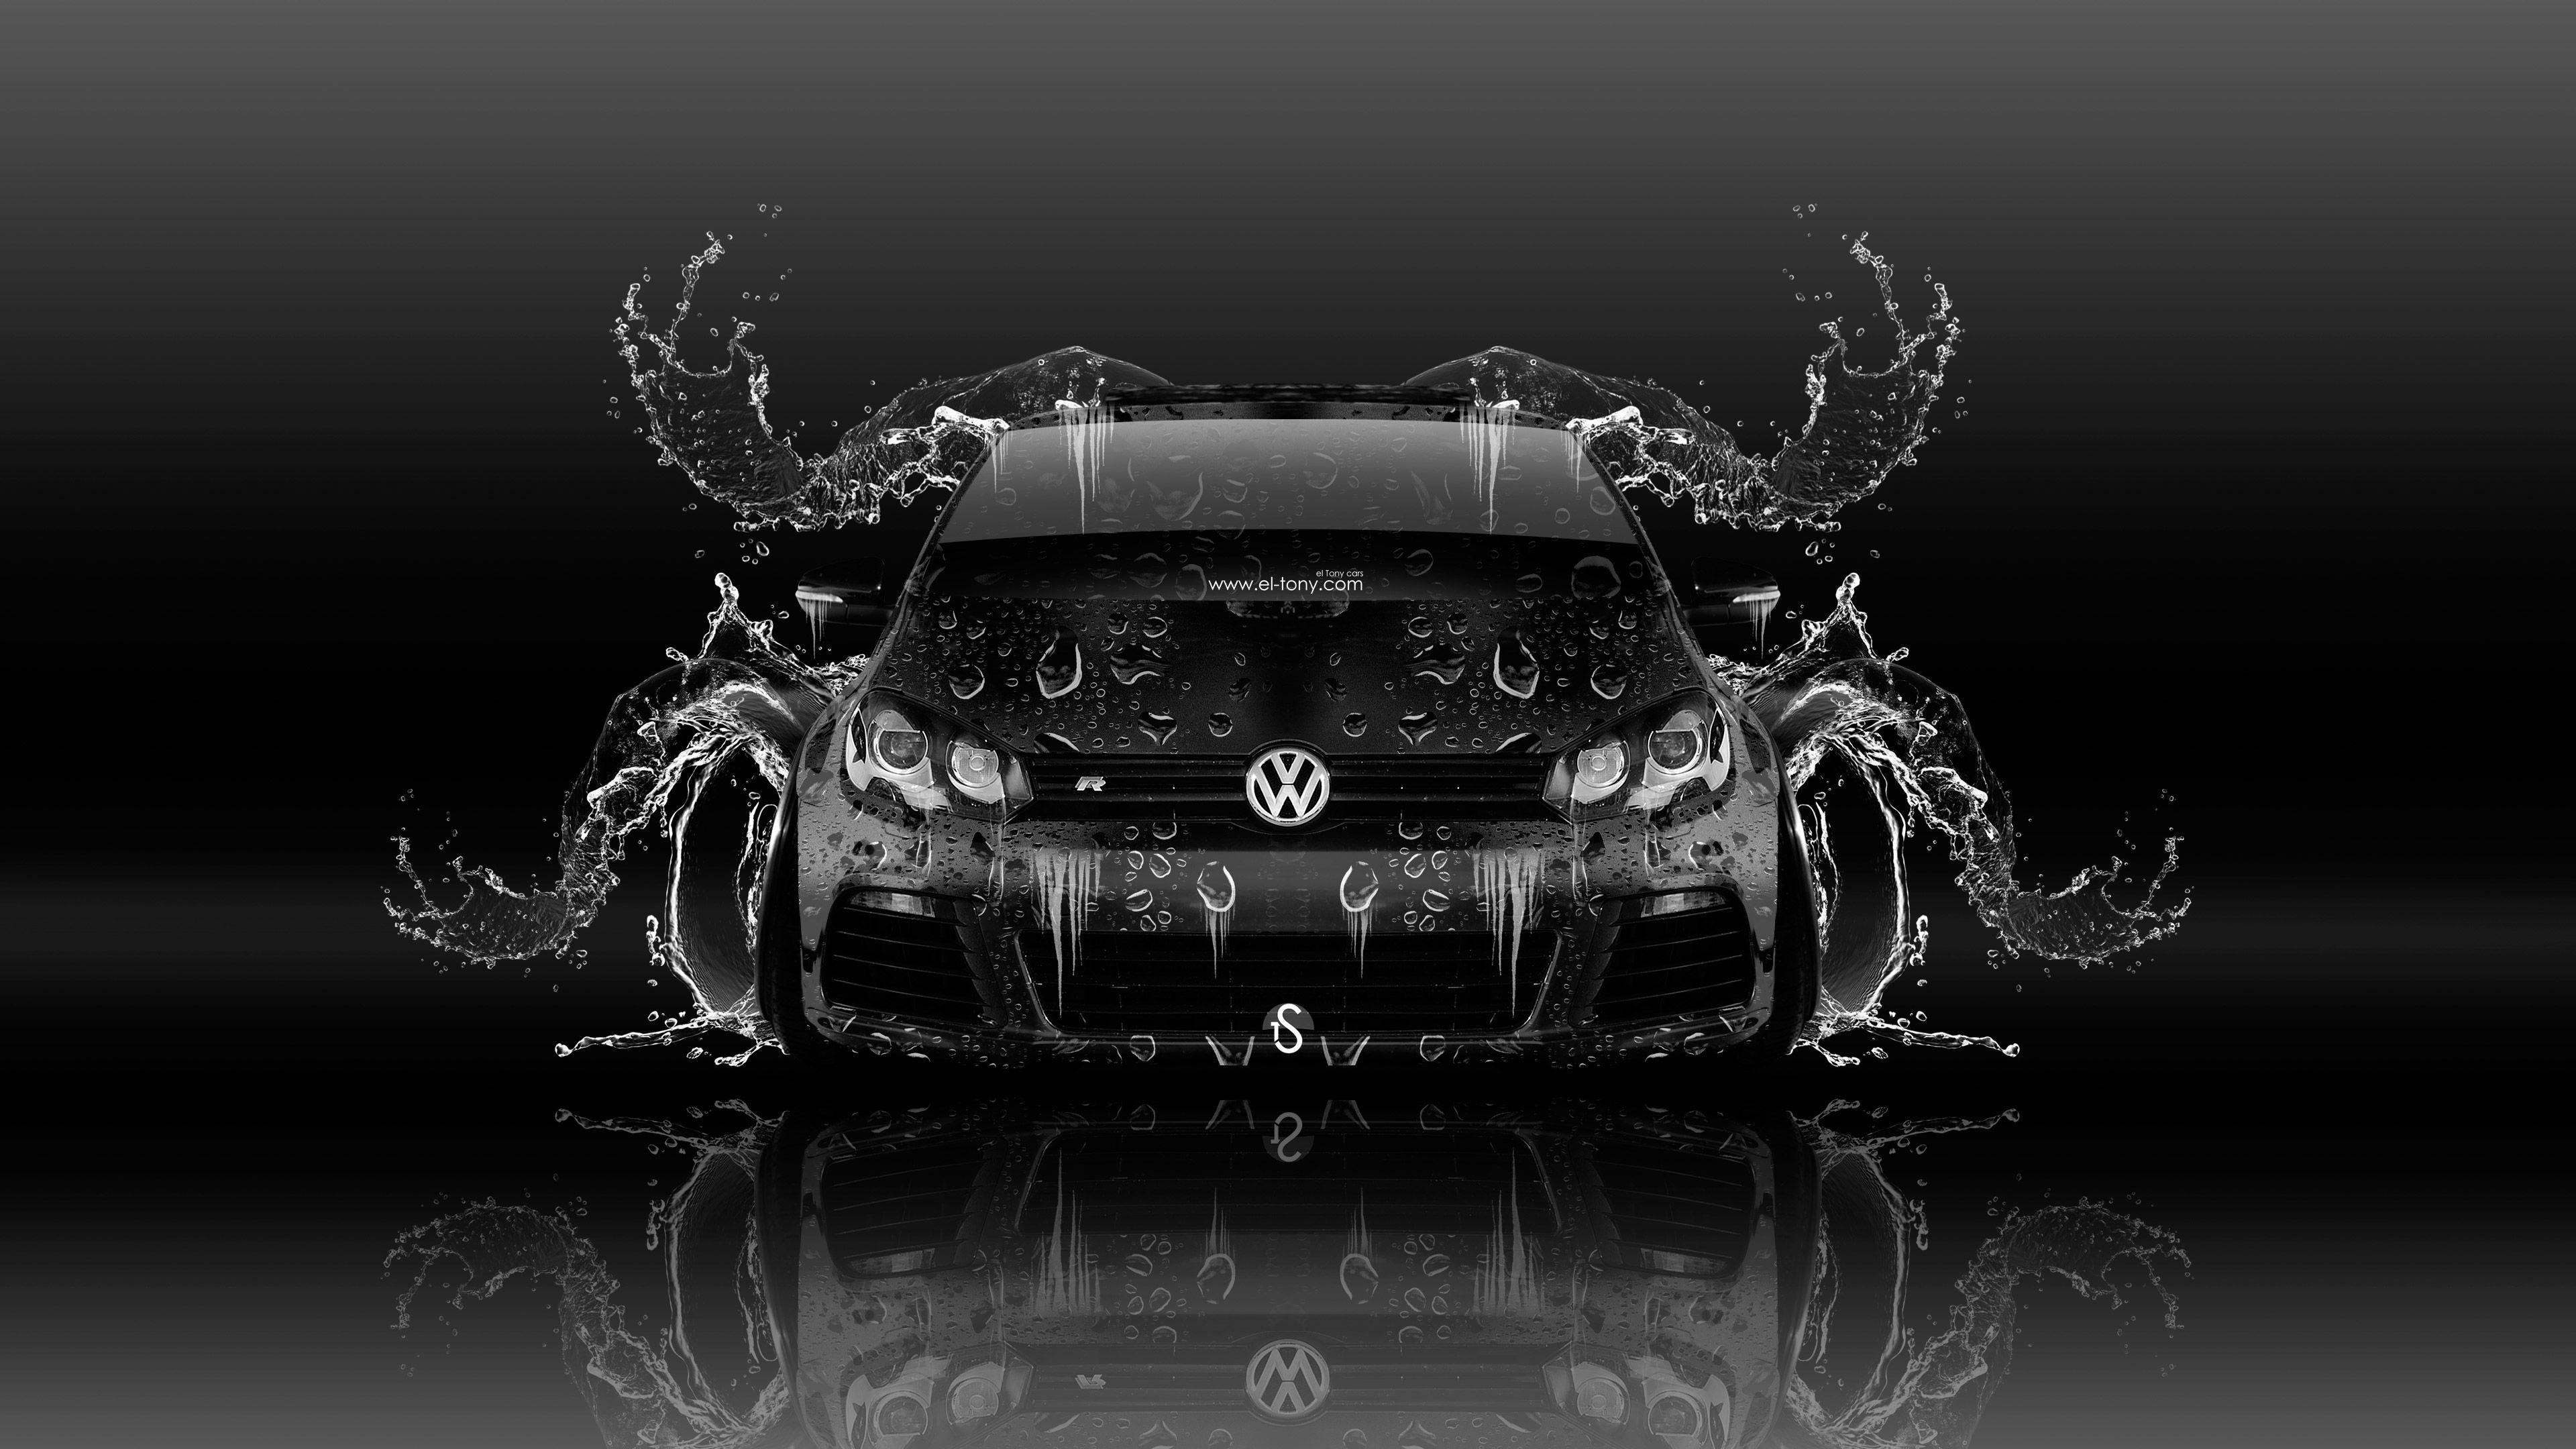 Volkswagen Golf R Wallpapers - Wallpaper Cave